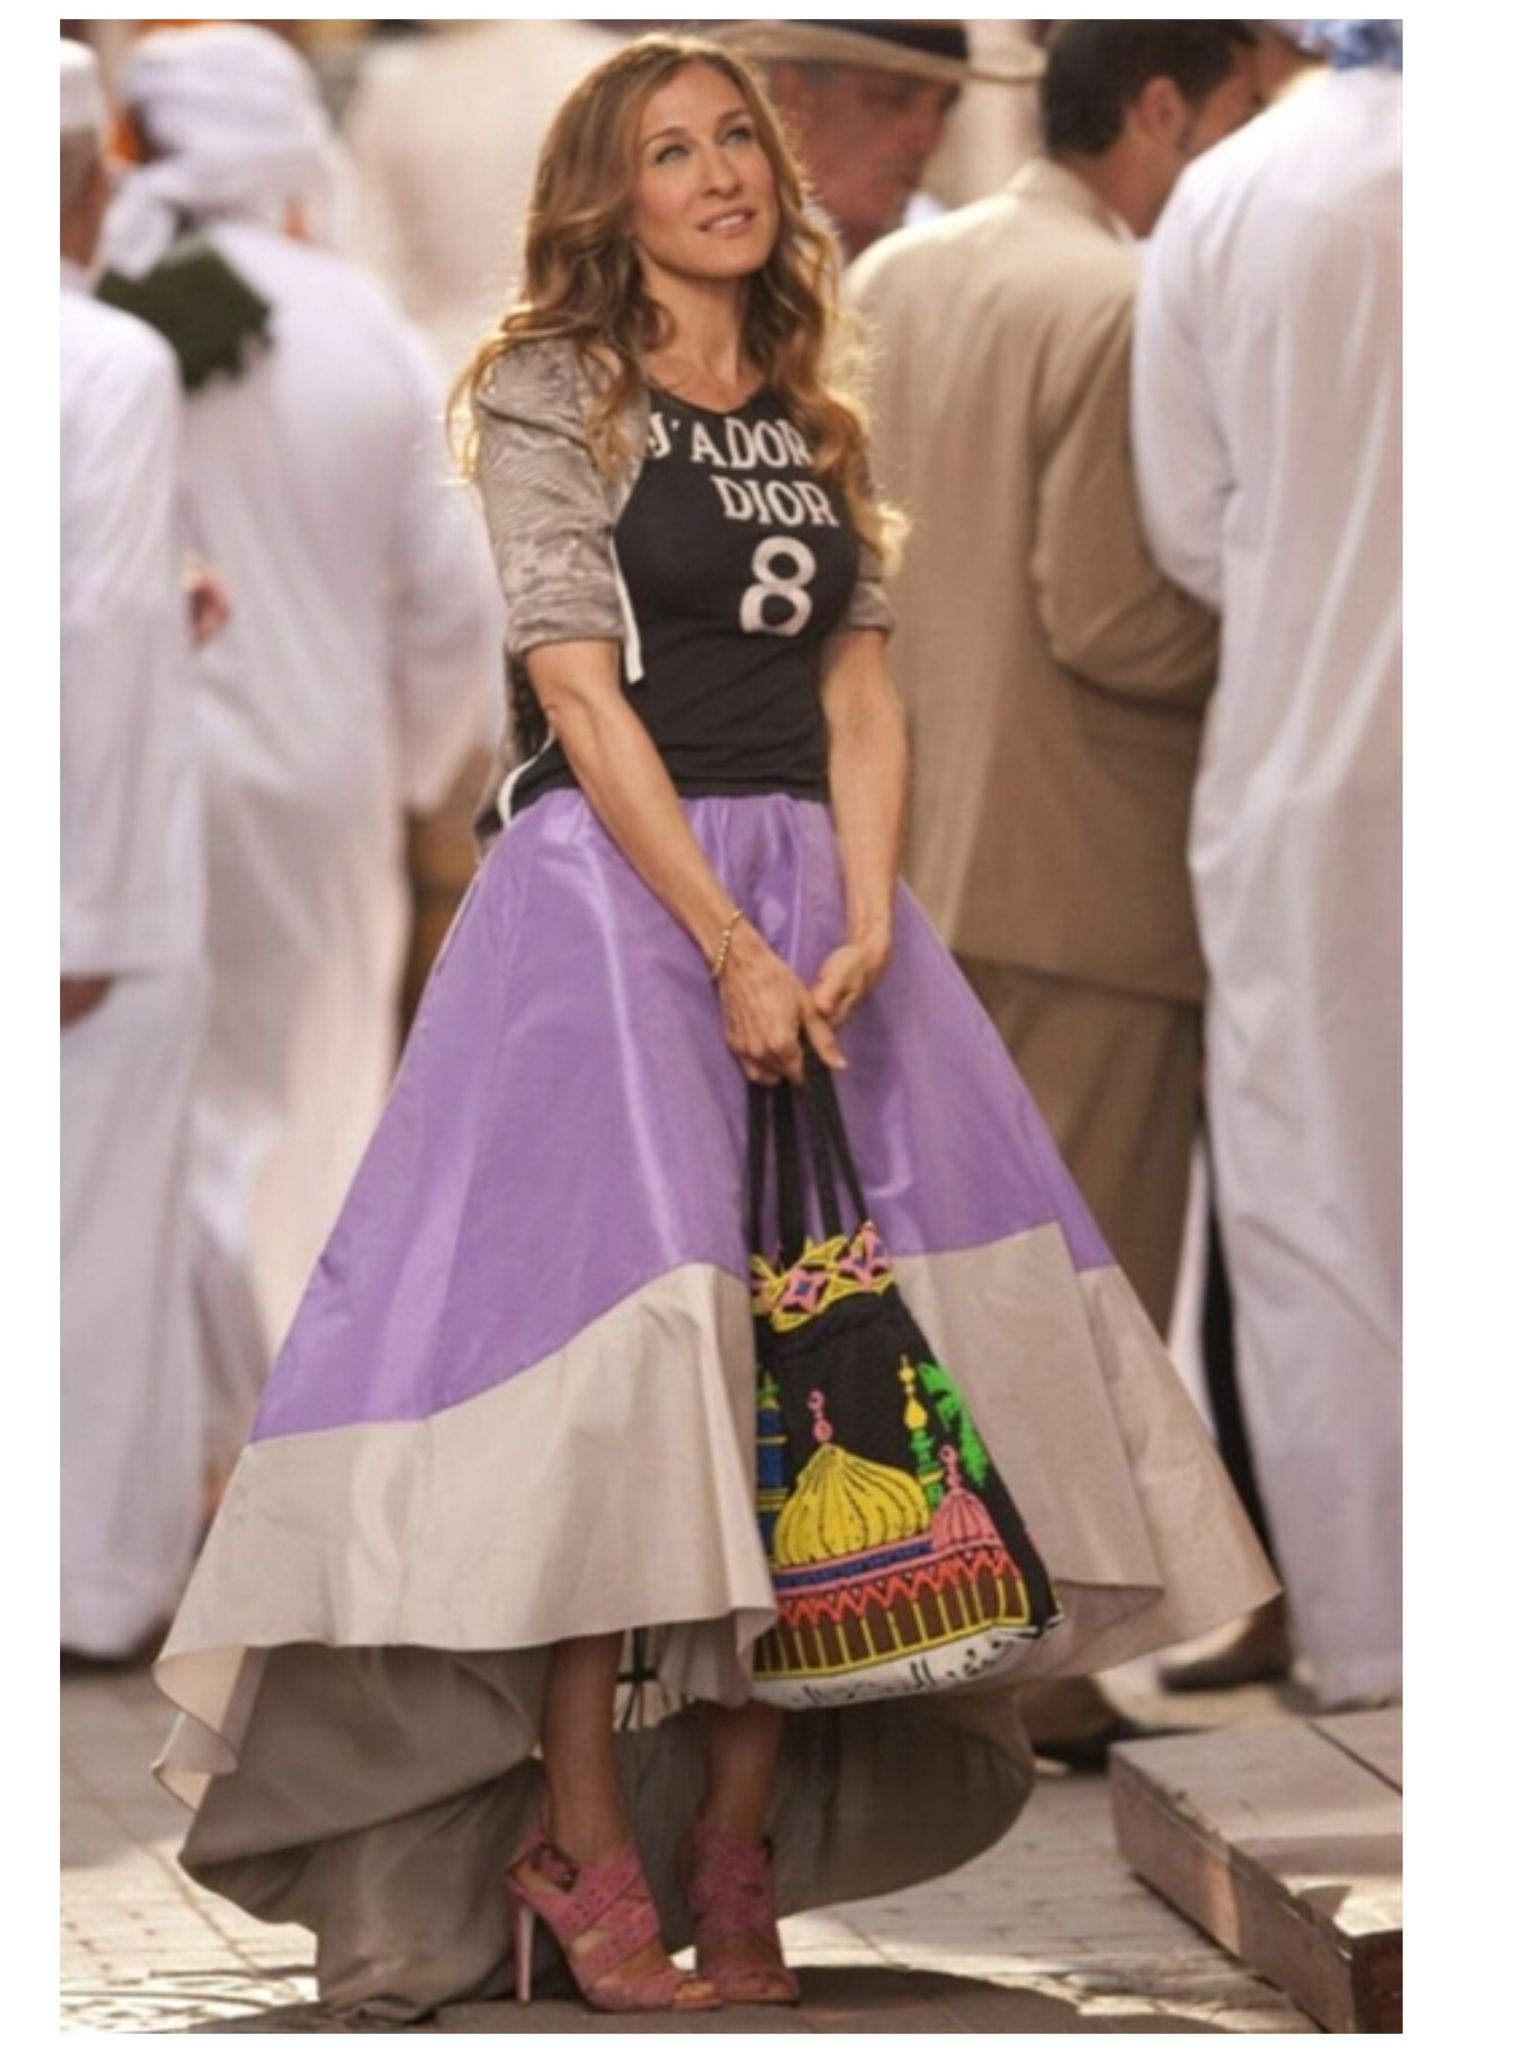 Slideshow: Carrie Bradshaws 12 Most Memorable Outfits